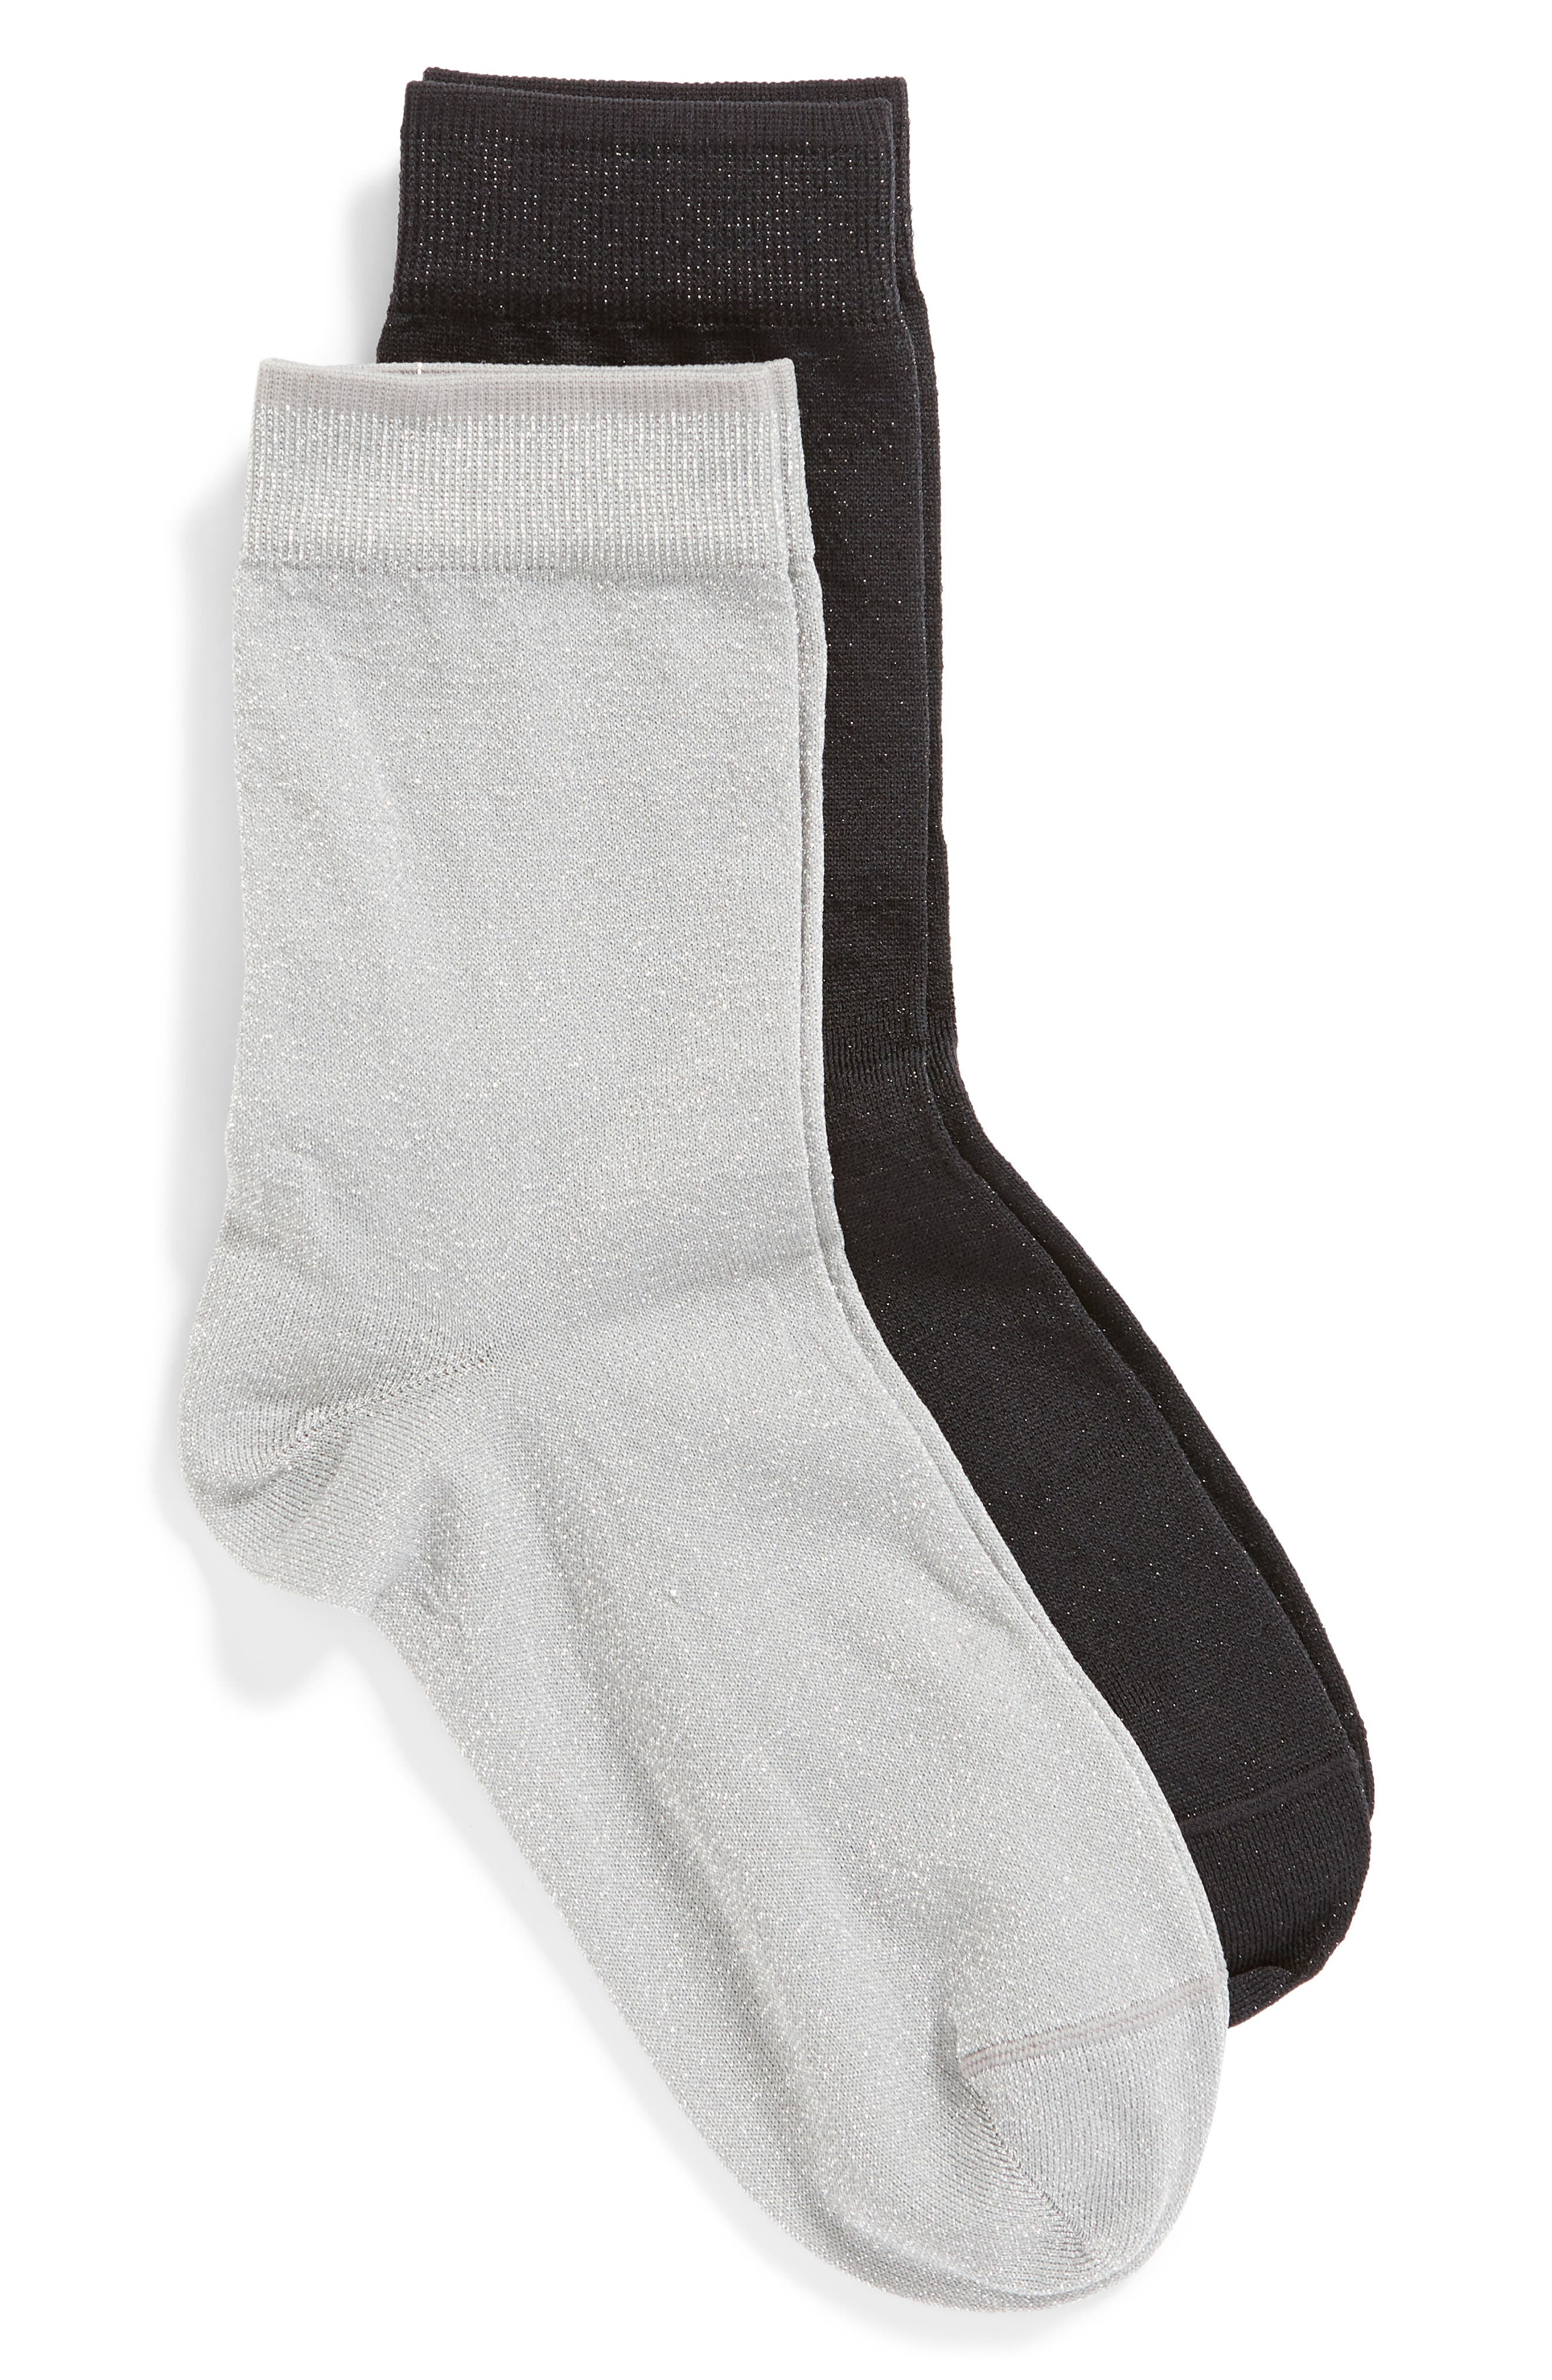 2-Pack Sparkle Crew Socks,                             Main thumbnail 1, color,                             040